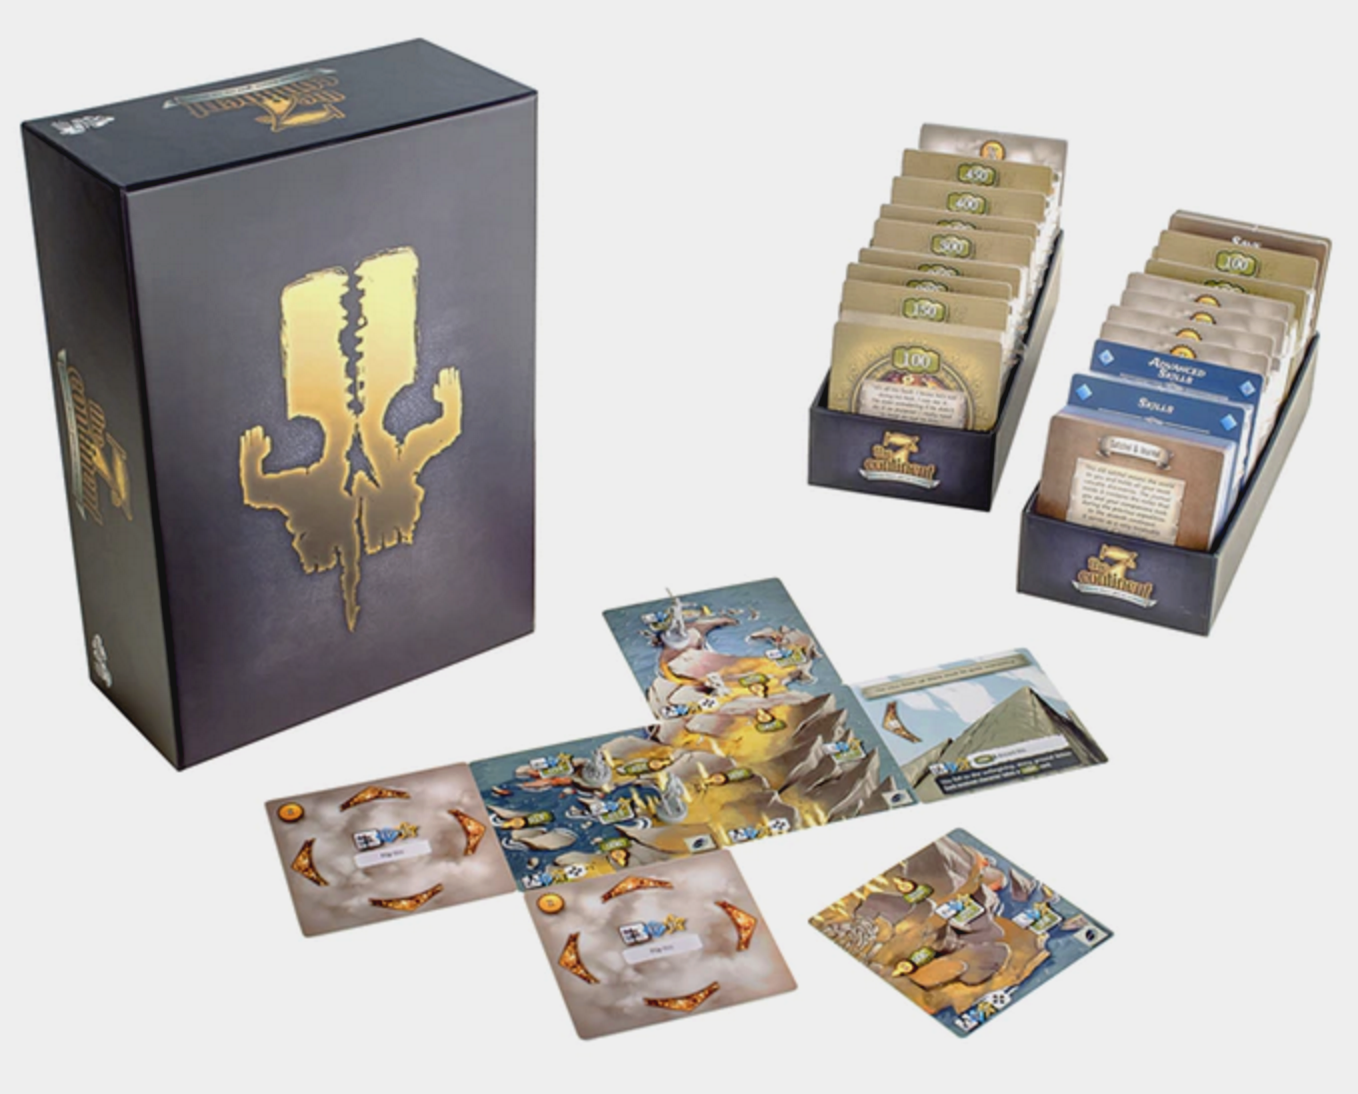 The 7th Continent review: A board game unlike anything you